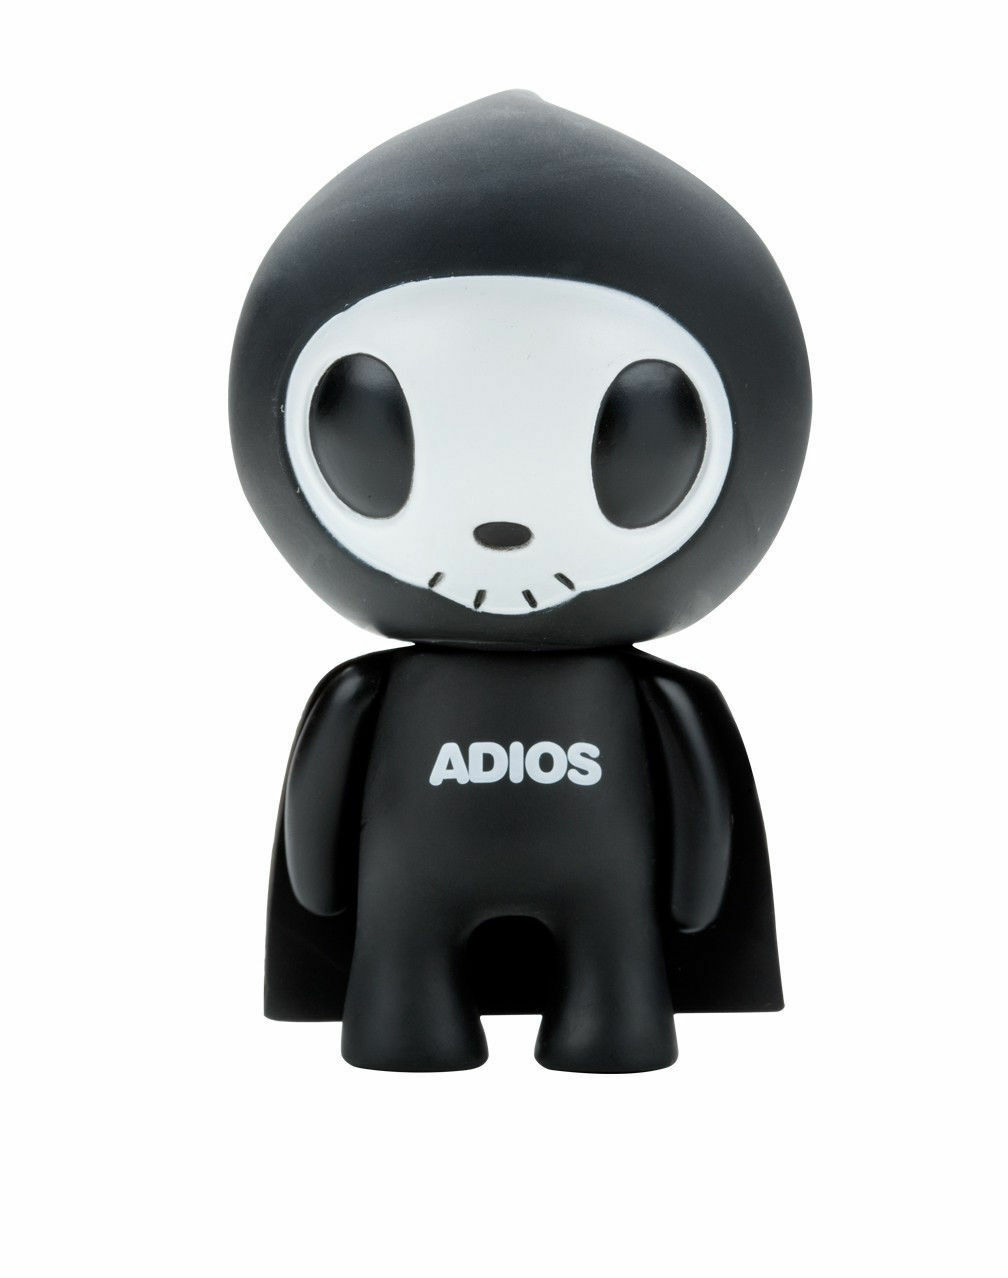 Tokidoki Adios Vinyl  Figure Collectible Art New In Box